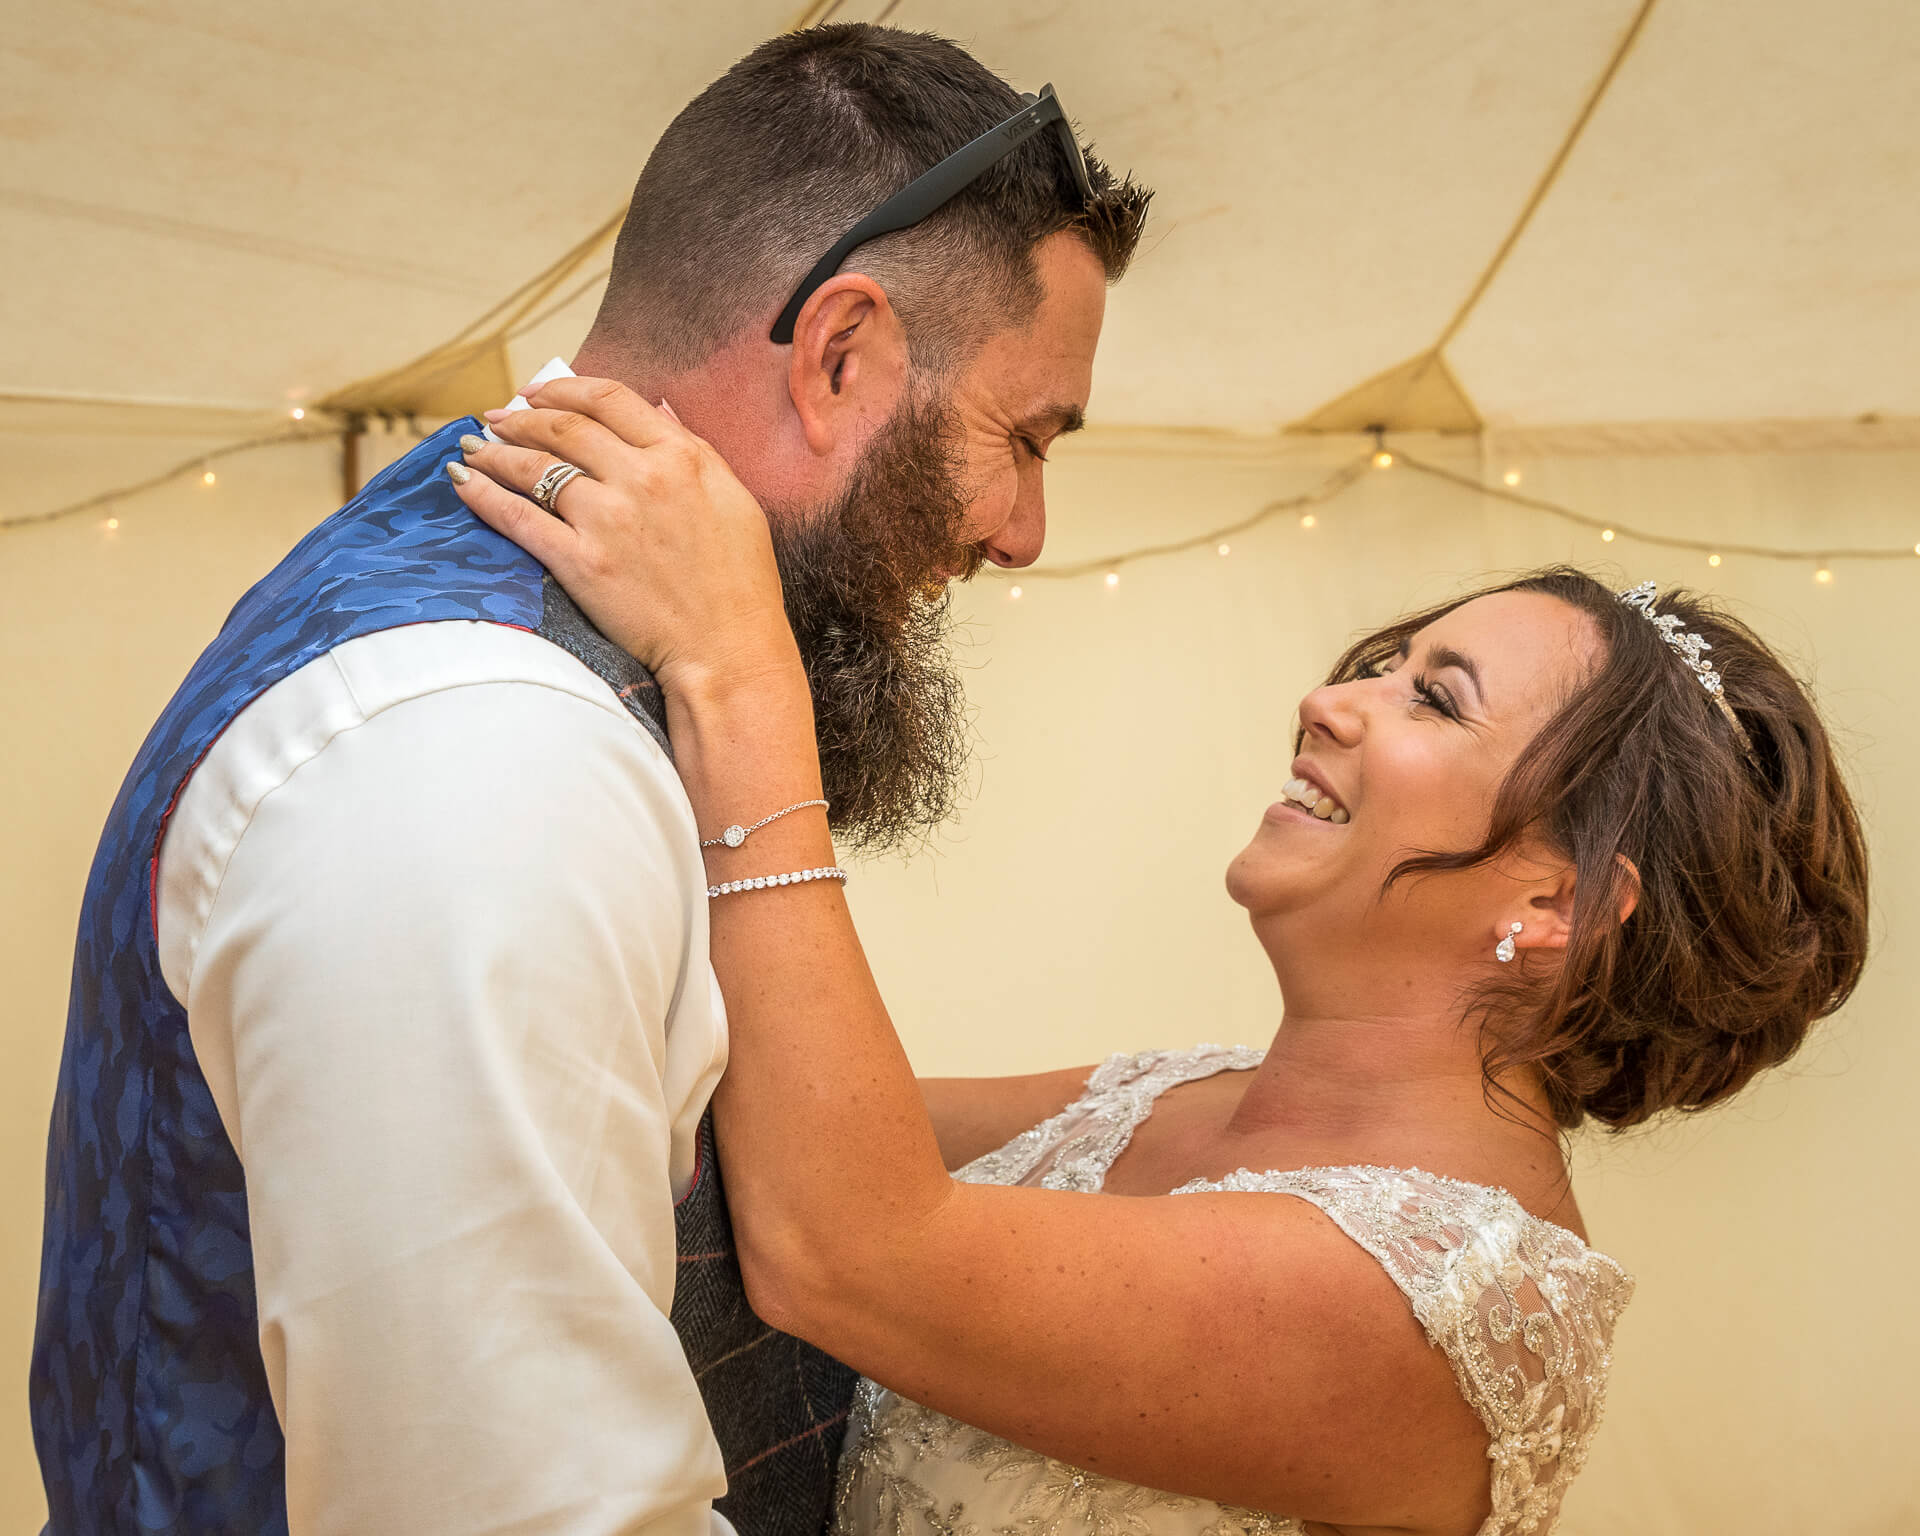 The bearded Groom having dispensed with his jacket and with sunglasses on top of his head, holds his new wife by the waist as they smile and gaze into one another eyes. She has her hands around the sides of his neck.